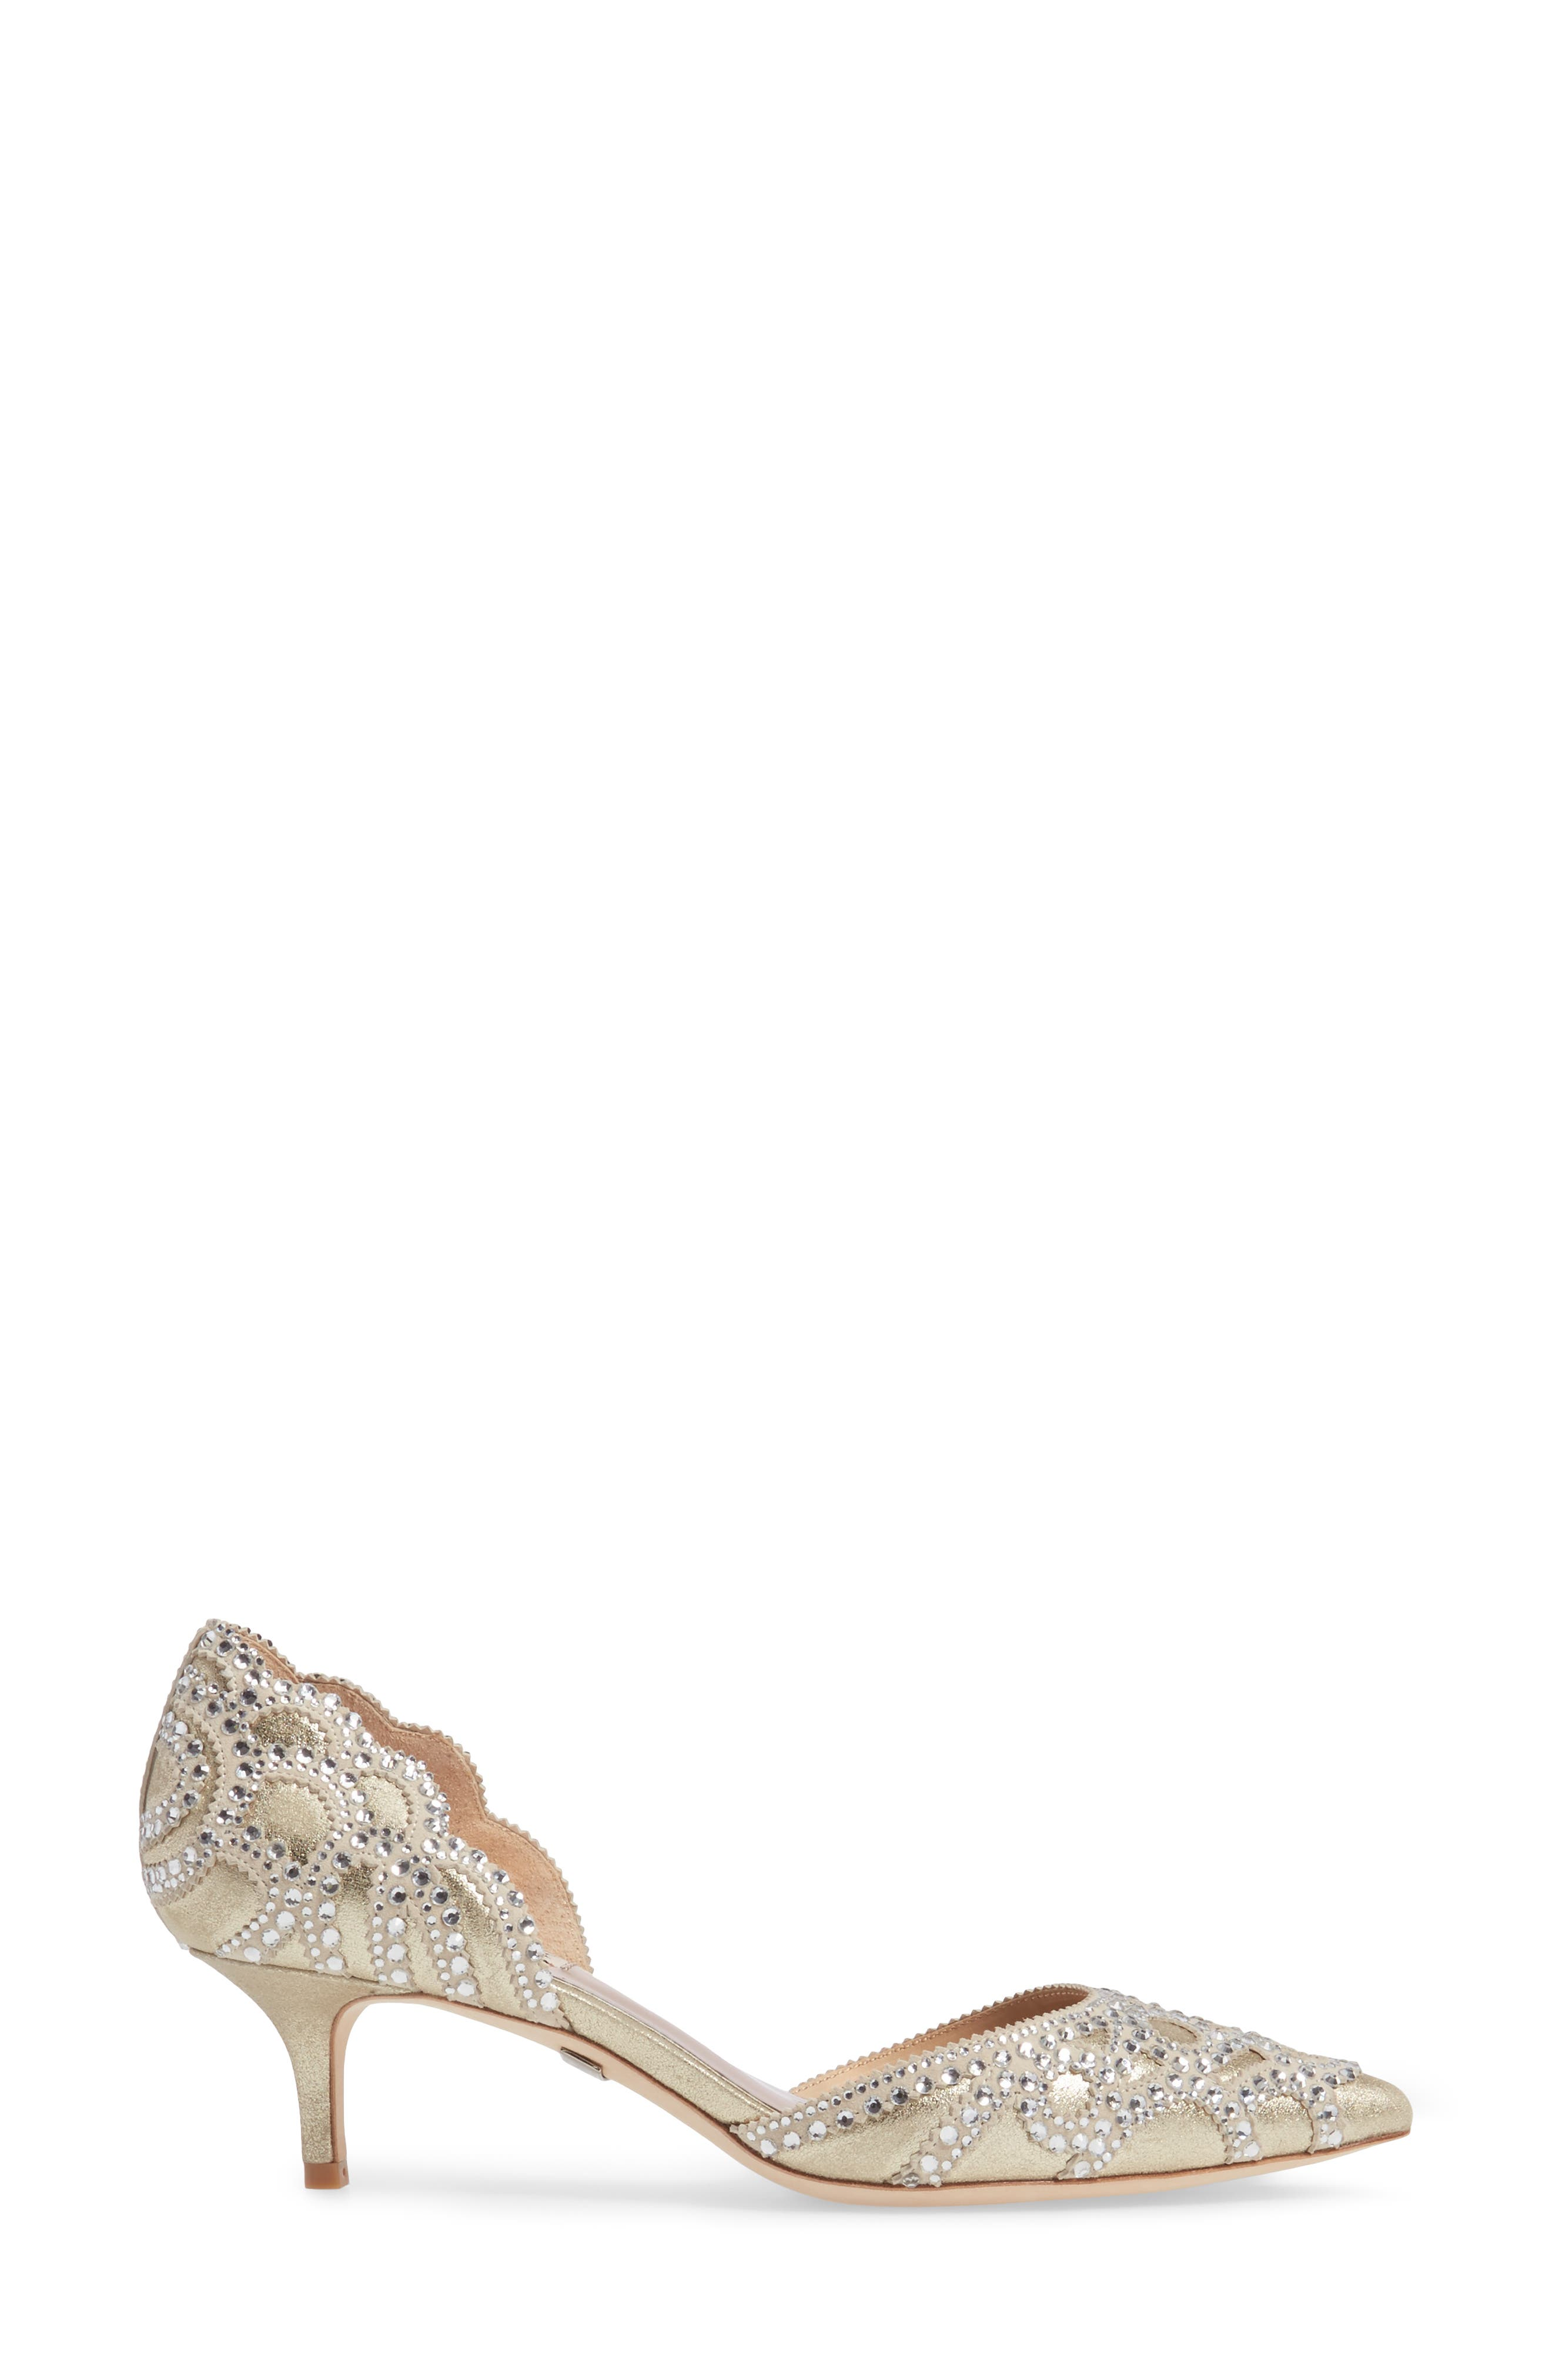 ,                             Badgley Mischka 'Ginny' Embellished d'Orsay Pump,                             Alternate thumbnail 3, color,                             PLATINO METALLIC SUEDE